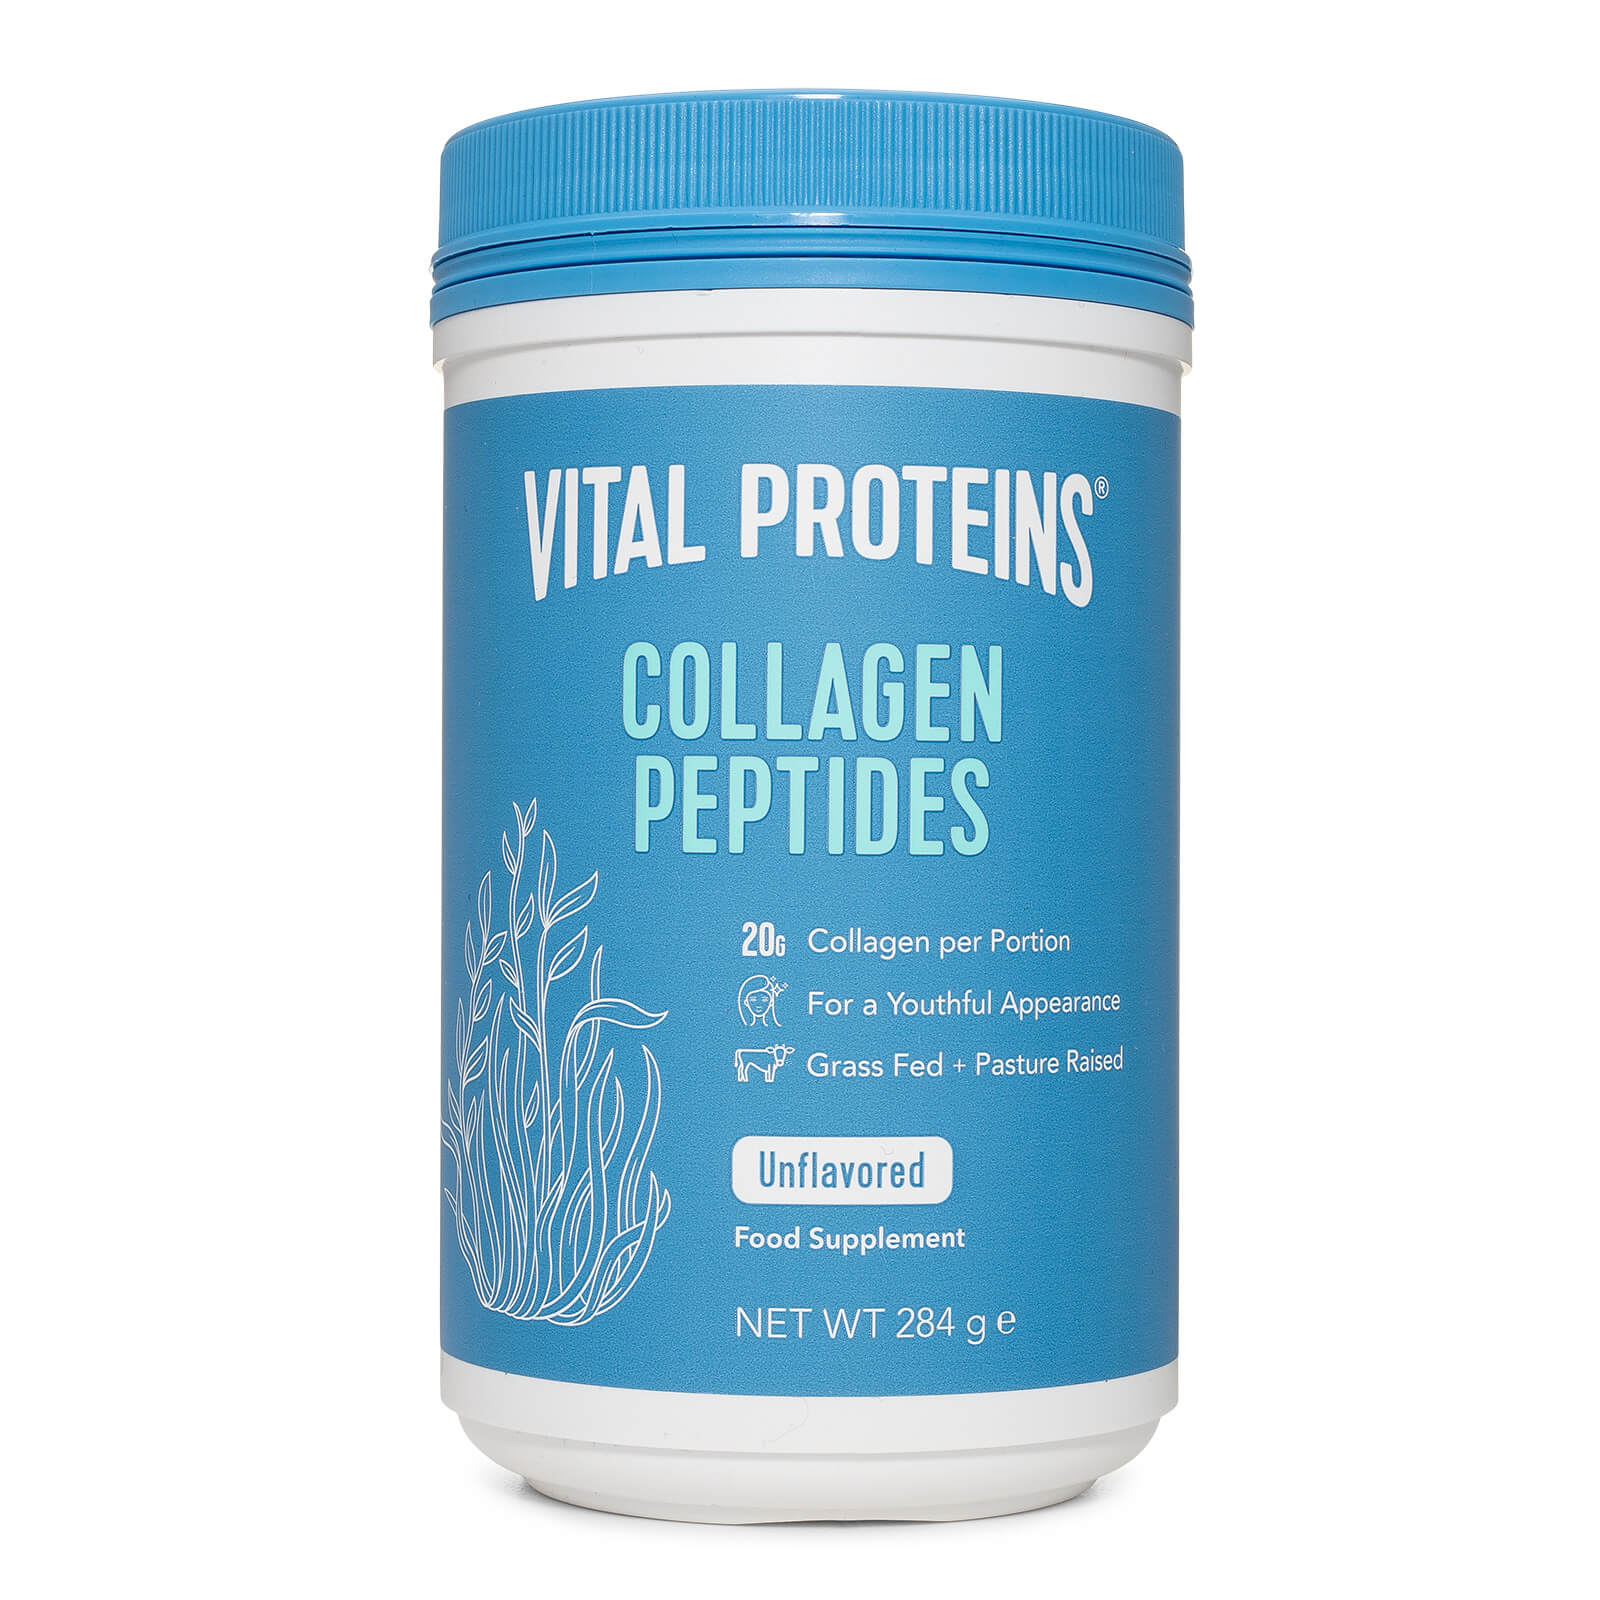 Collagen Peptides - 10oz Subscription - Delivery Every 1 Month